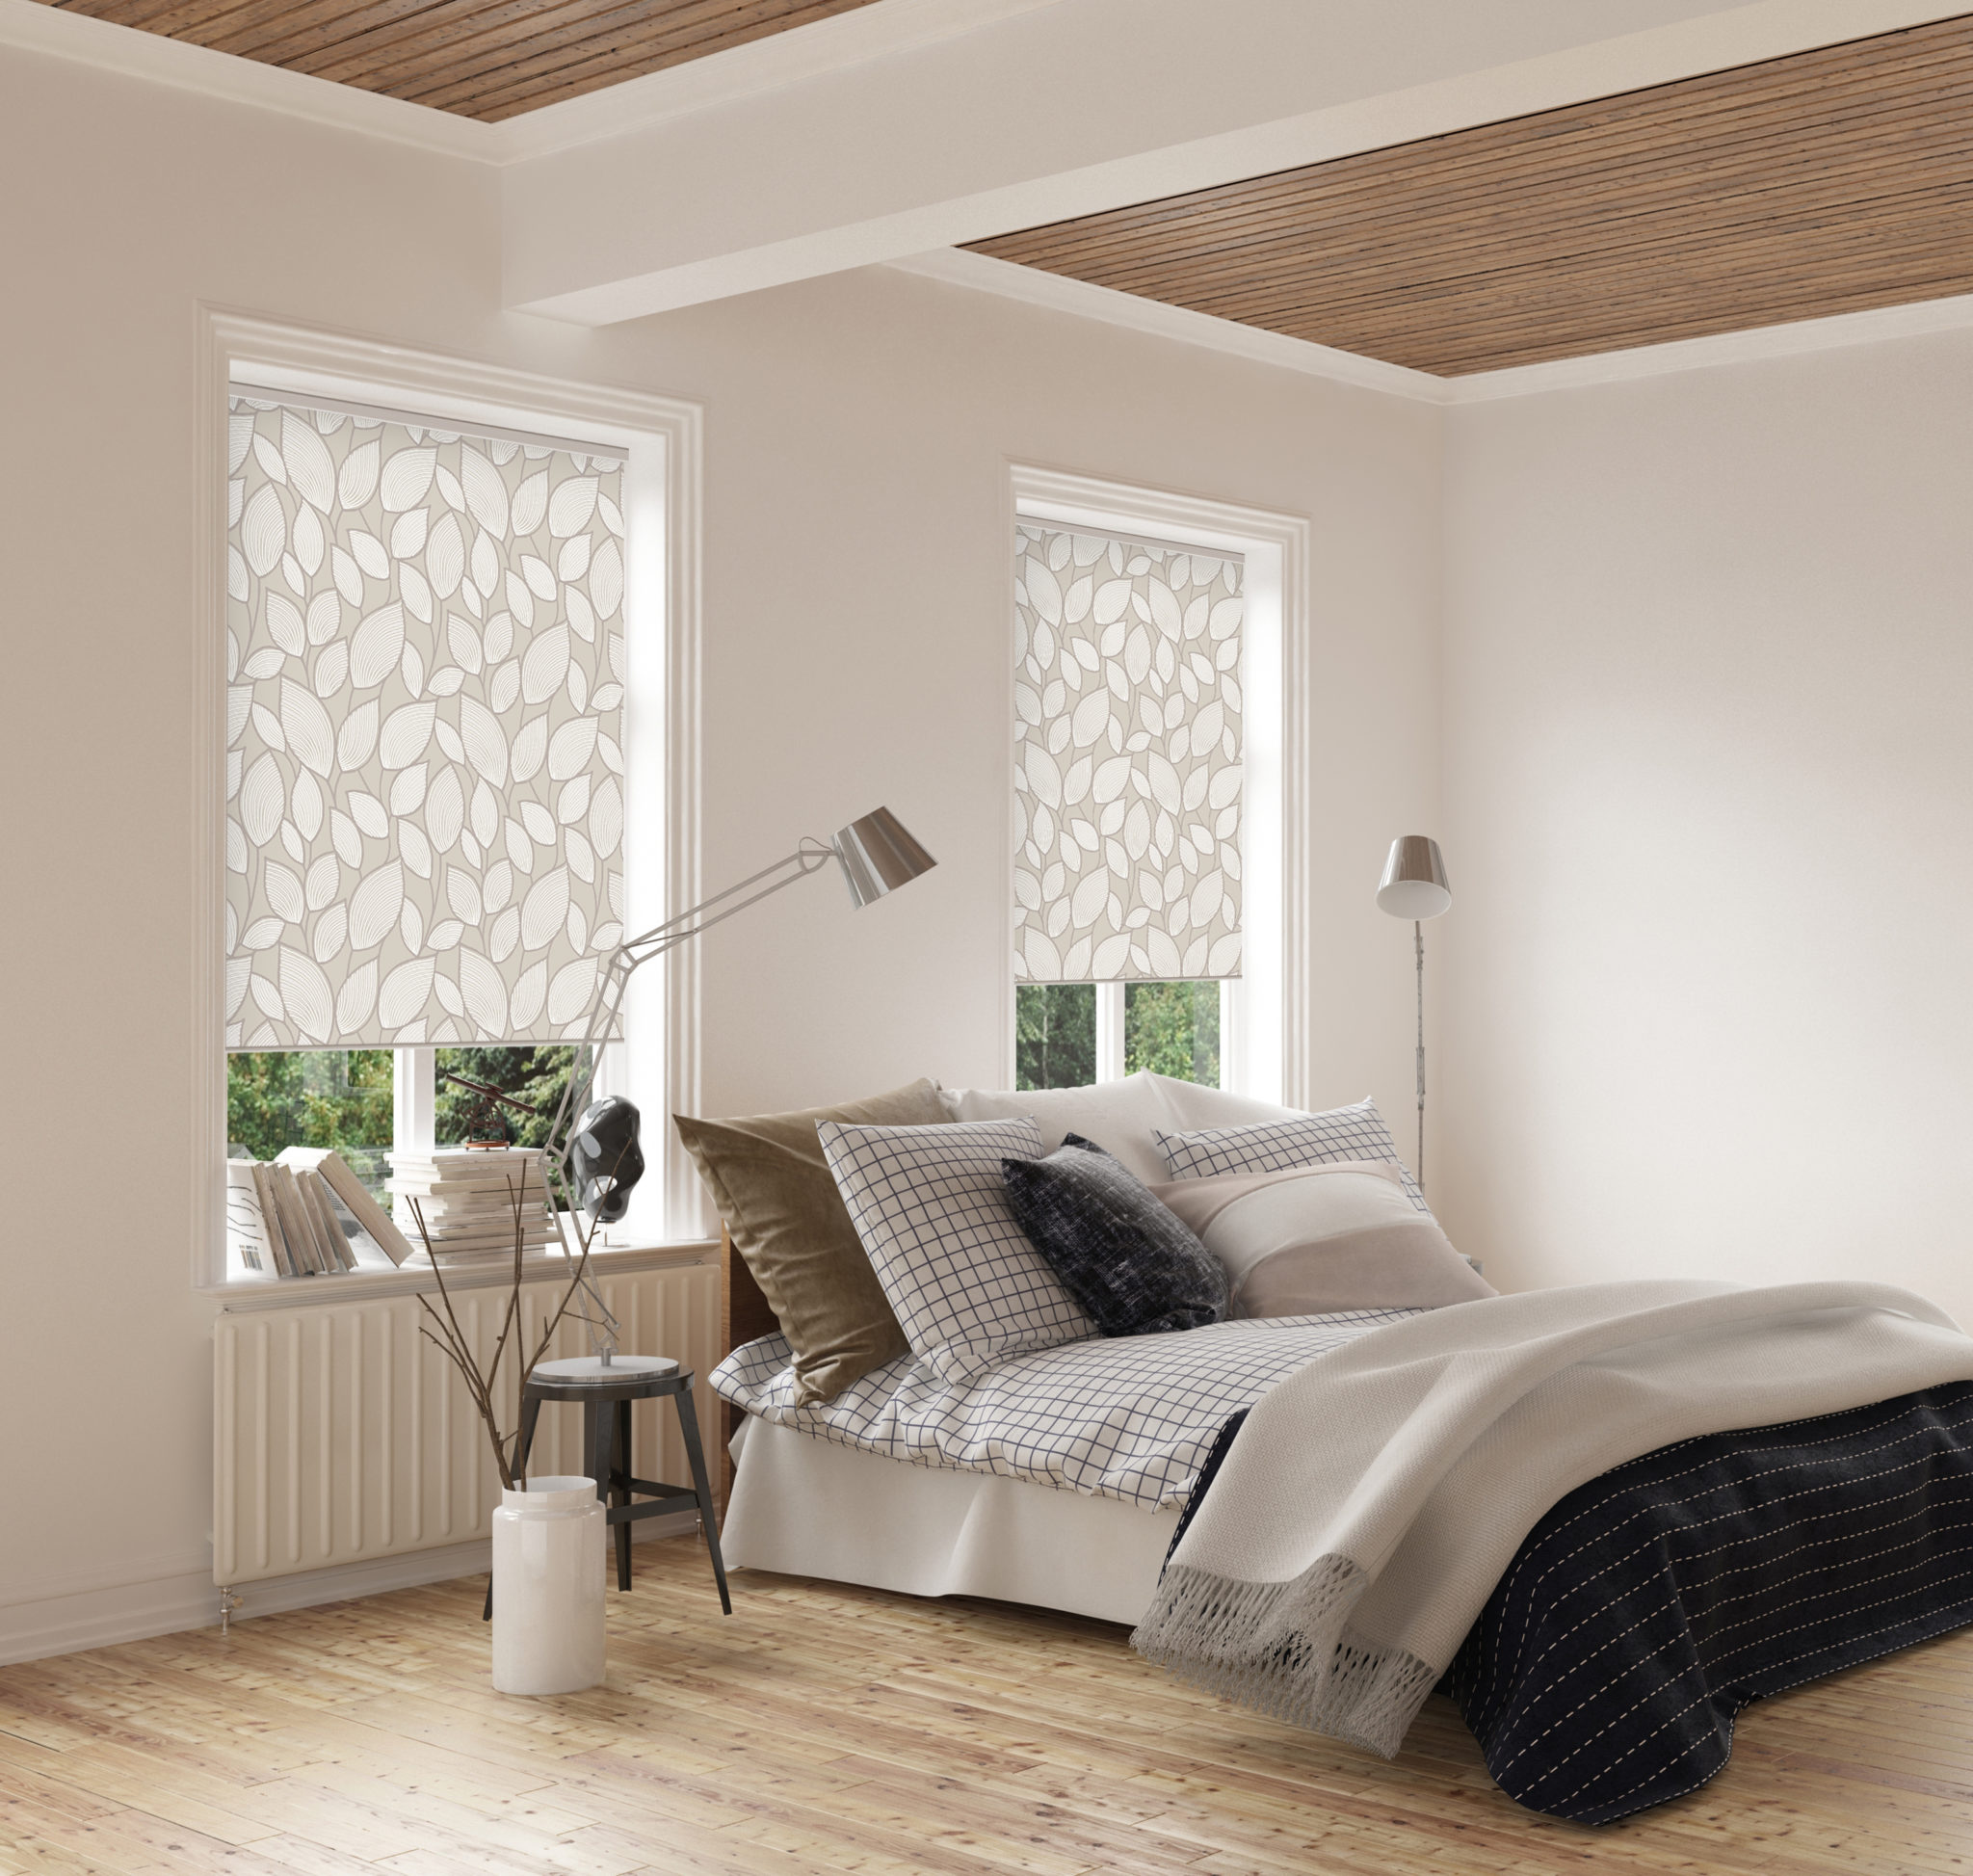 JM roller blind by luminos